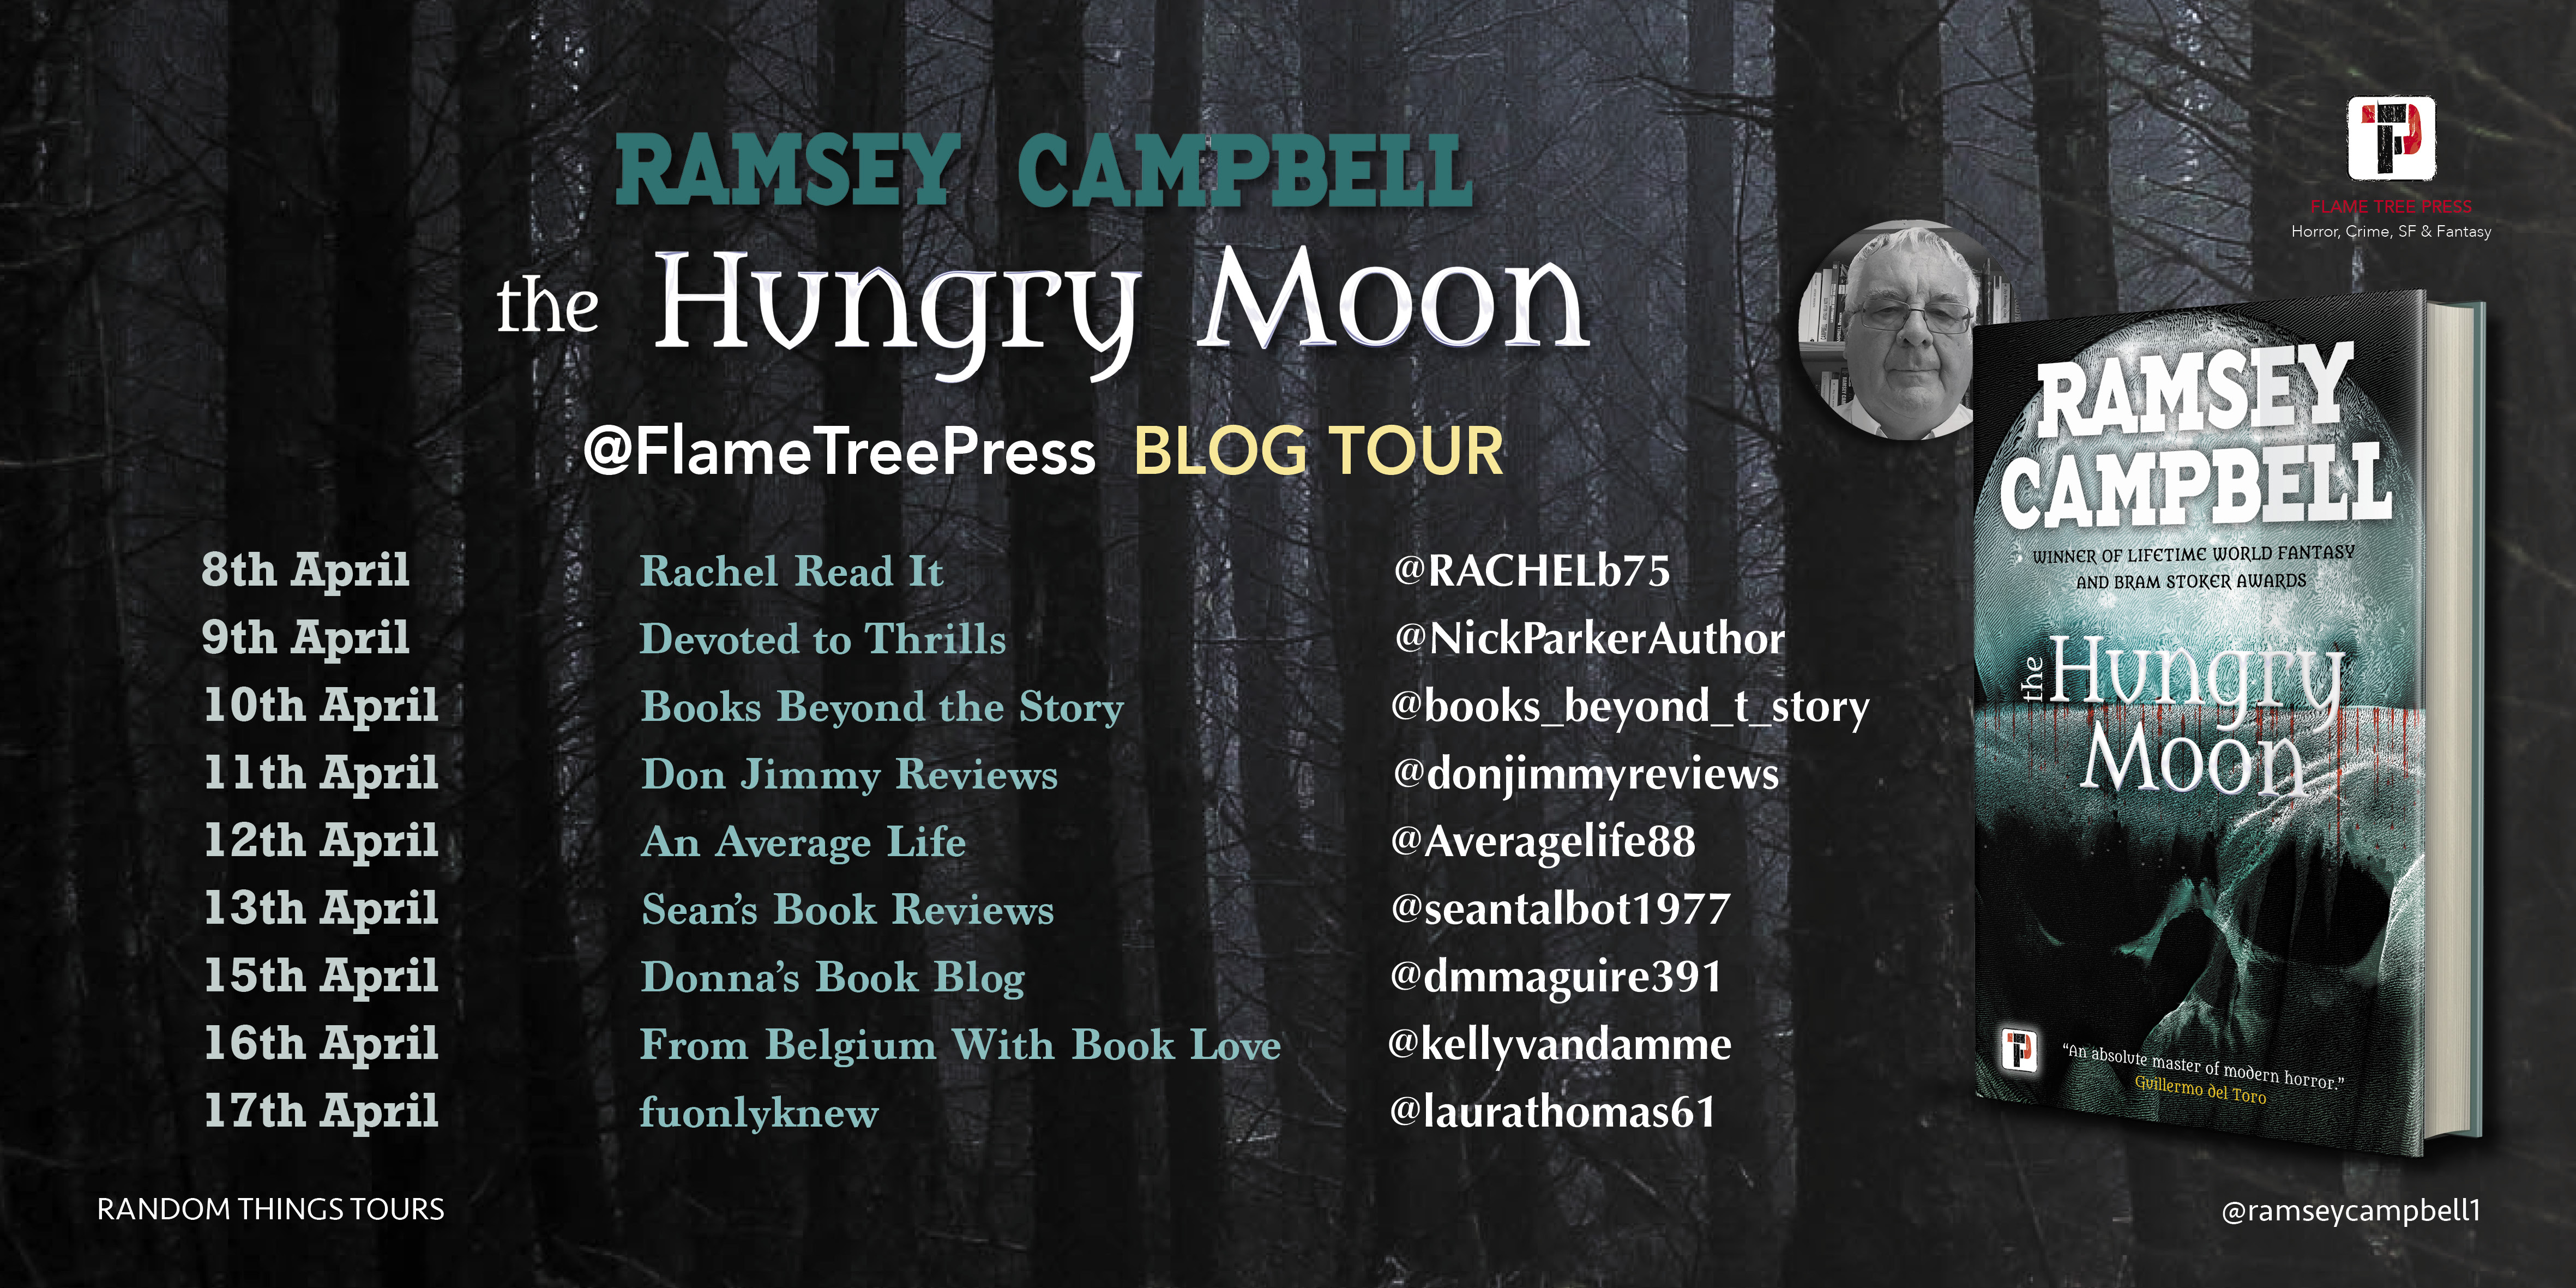 Ramsey Campbell - The Hungry Moon Blog Tour